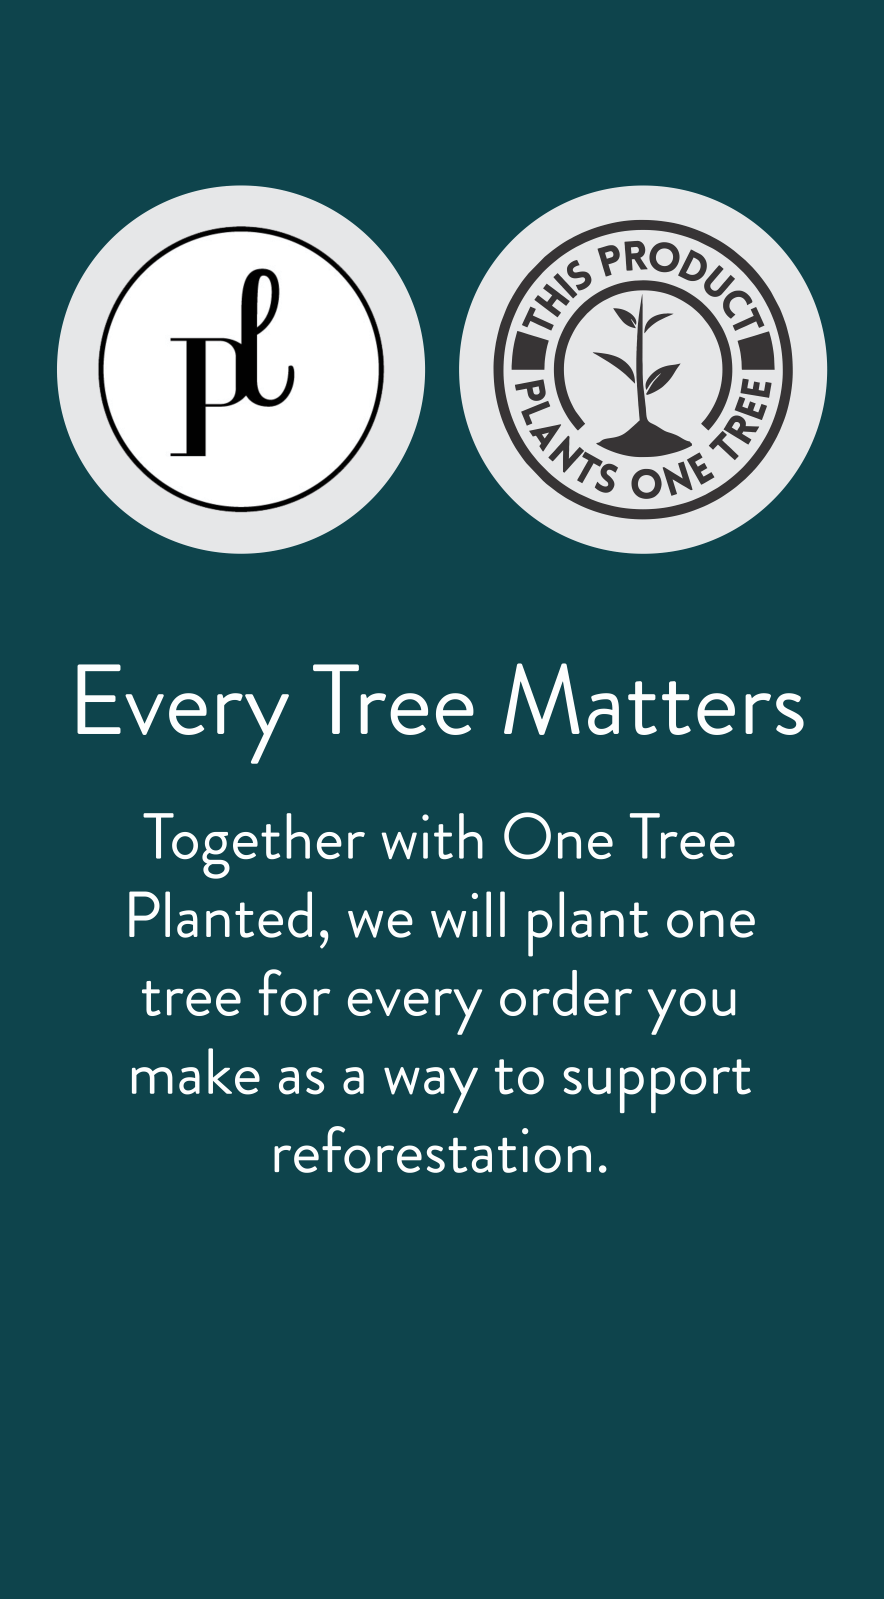 one tree planted item banner